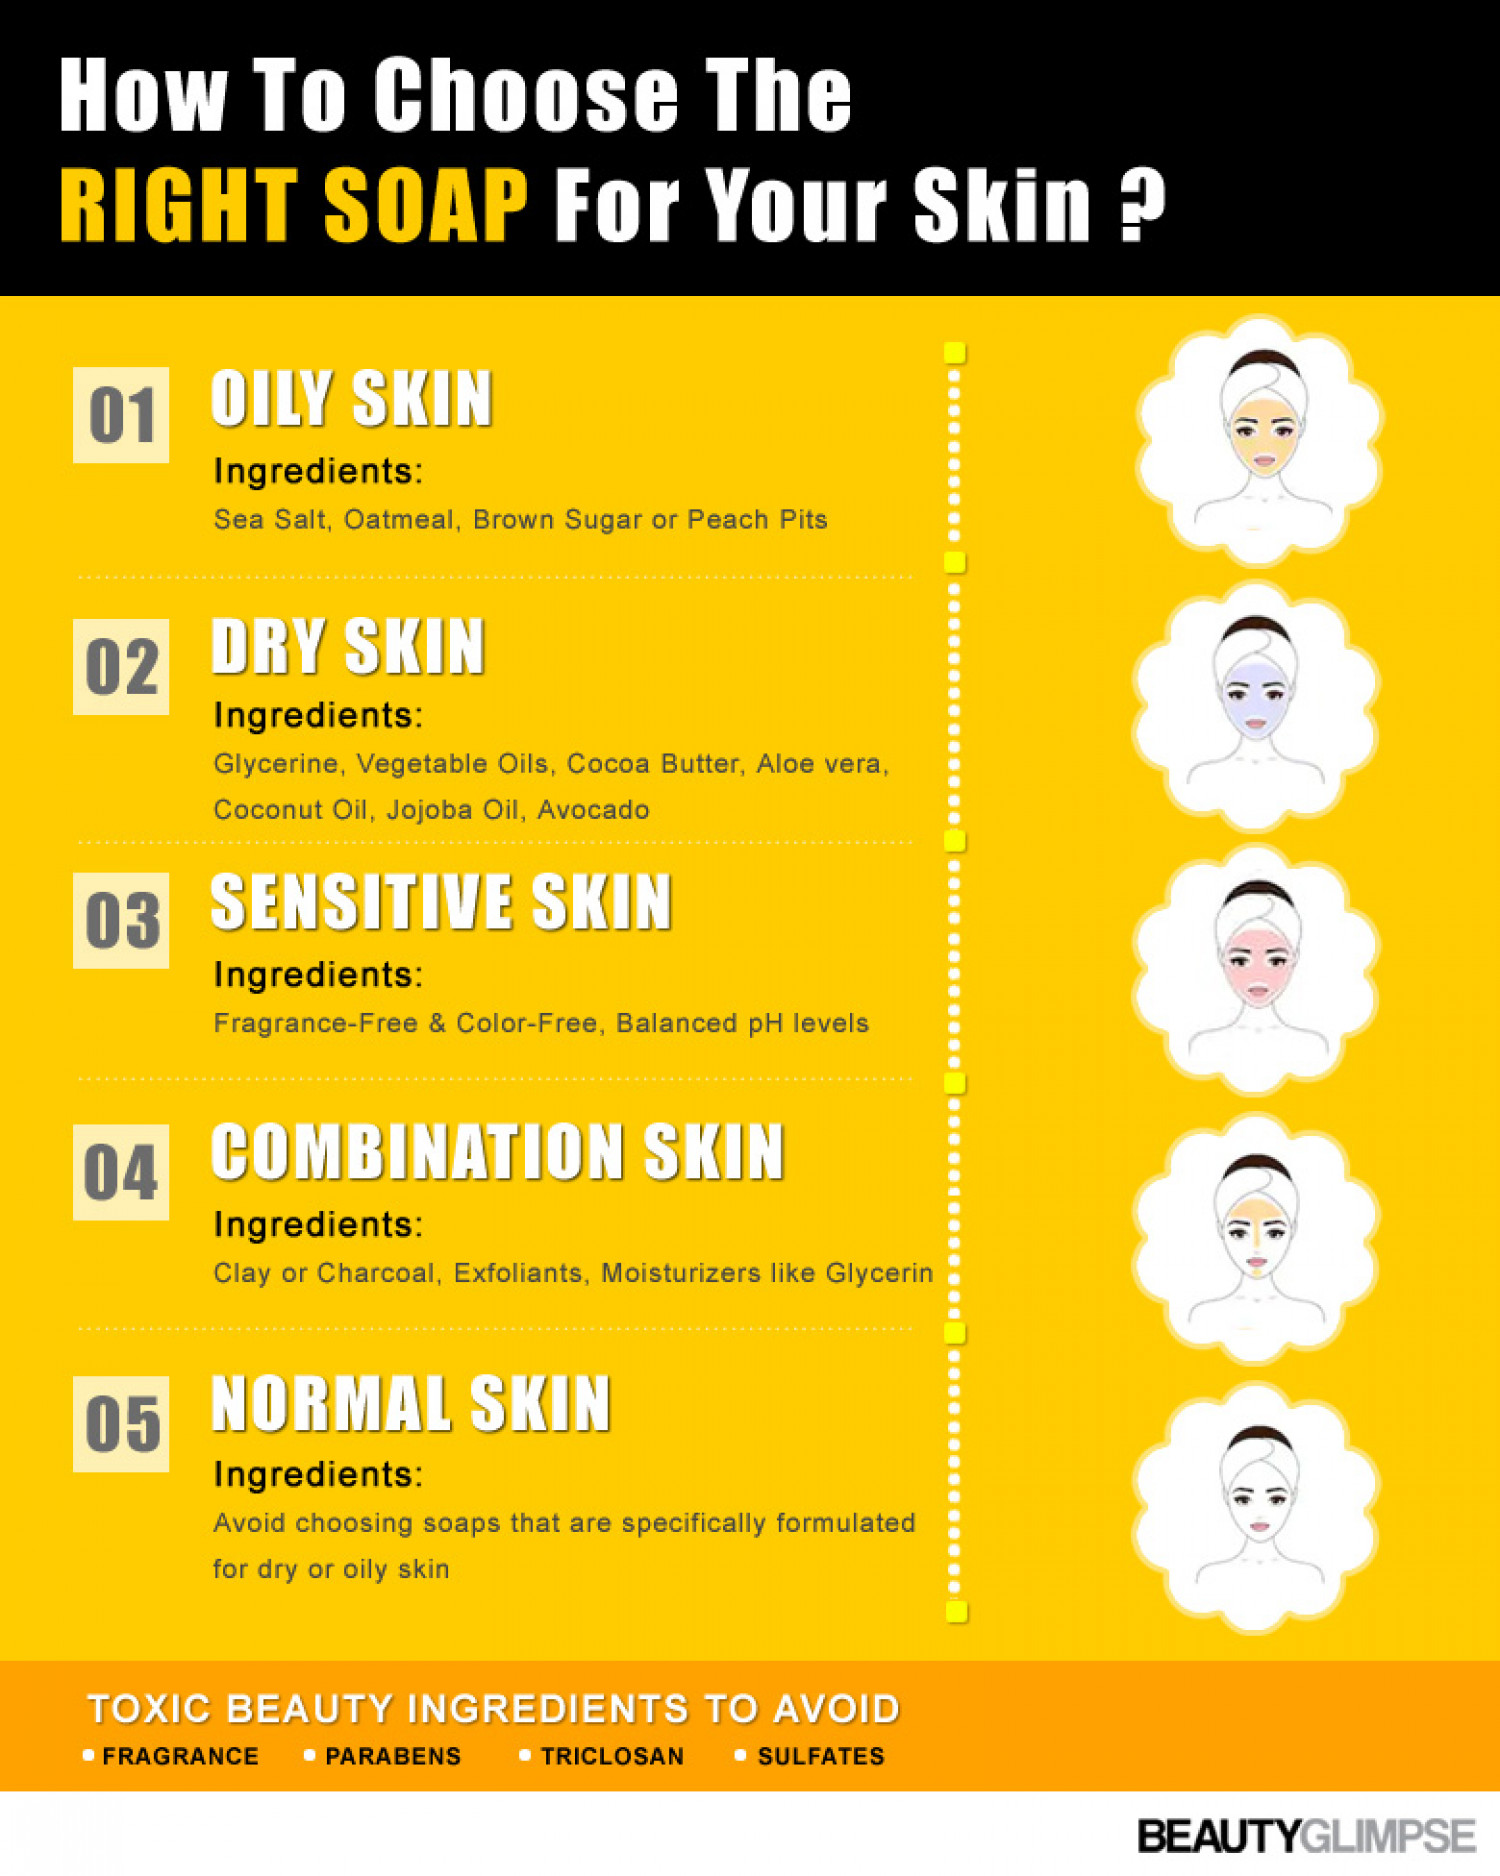 How To Choose The Right Soap For Your Skin ? Infographic